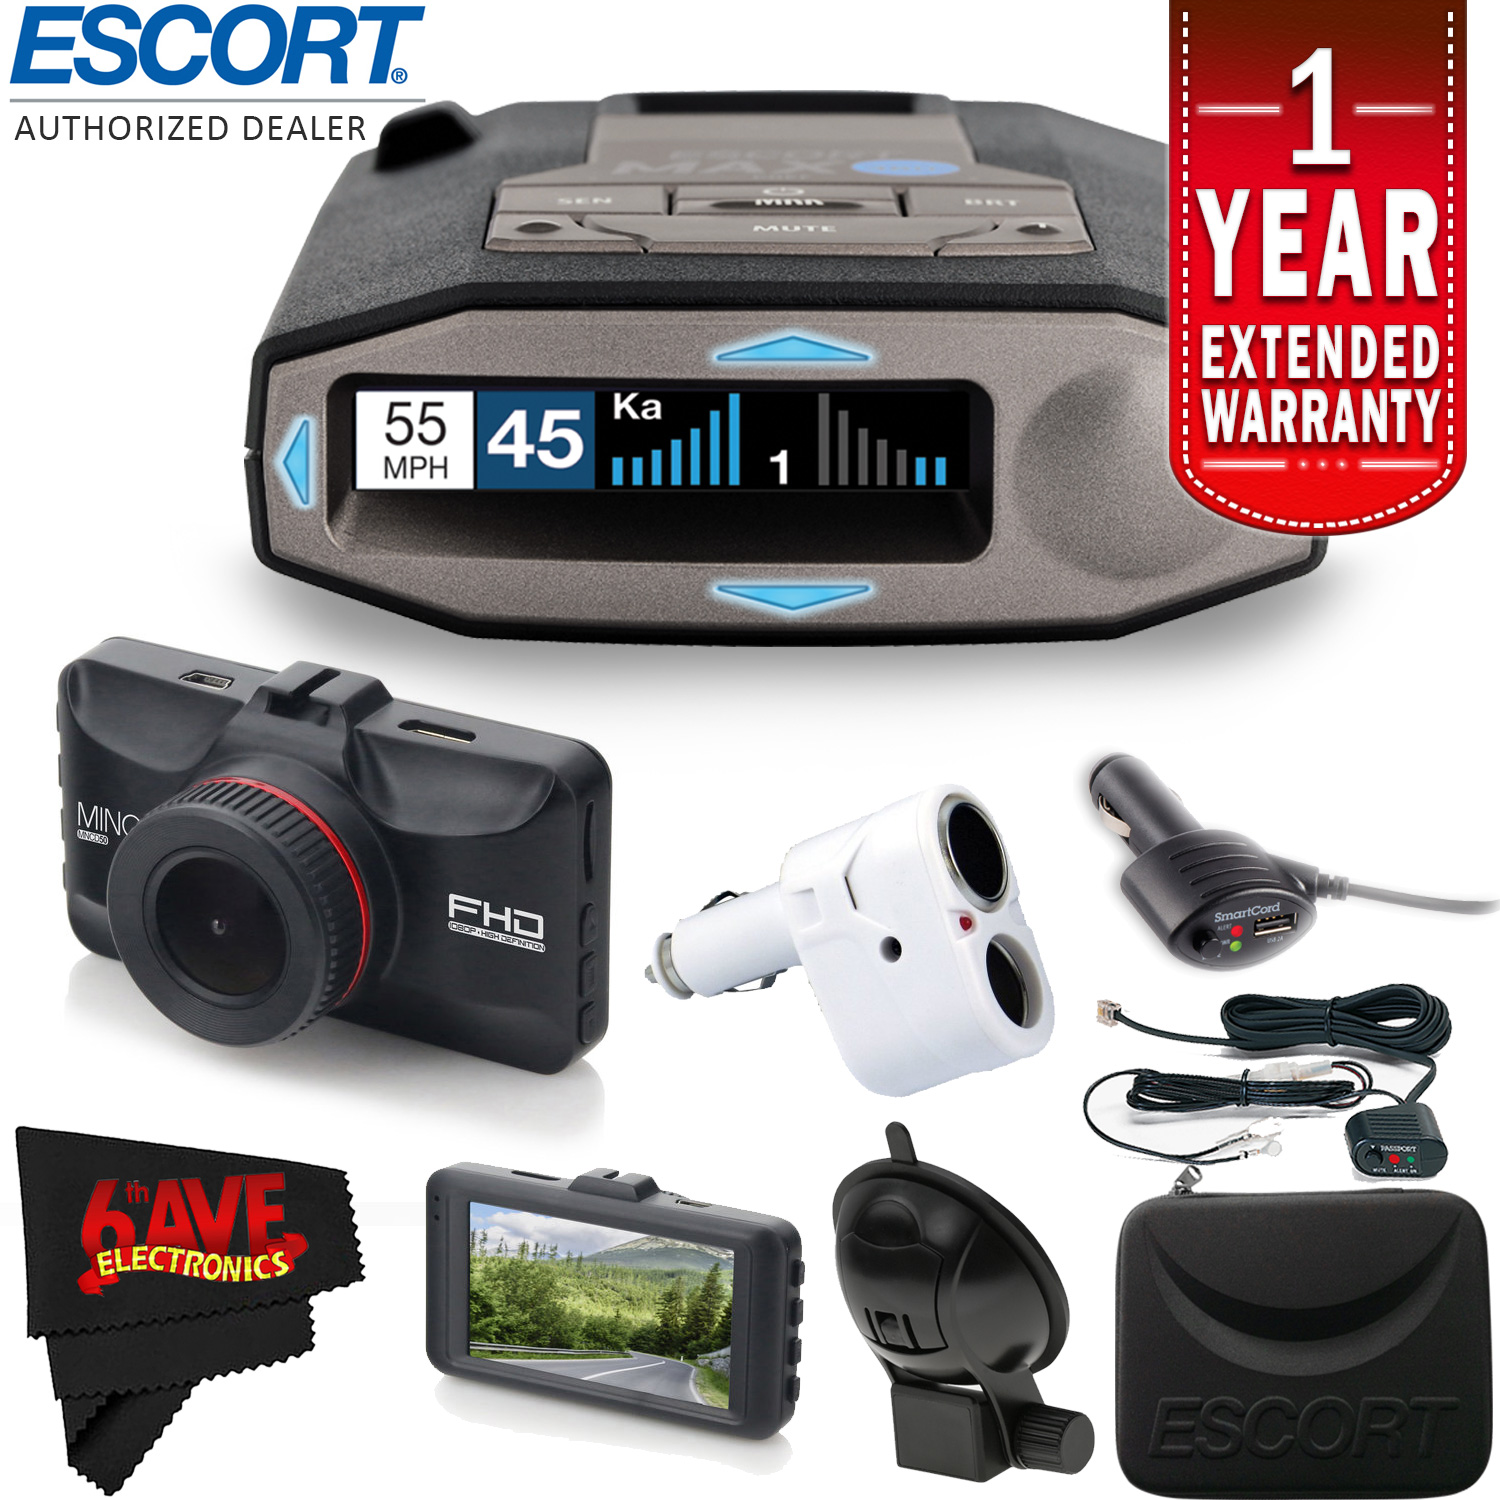 Escort Max 360C Radar Laser Detector with Wi-Fi + Escort Smart Direct Power Cord (Blue) + 1-Year Extended... by 6AVE